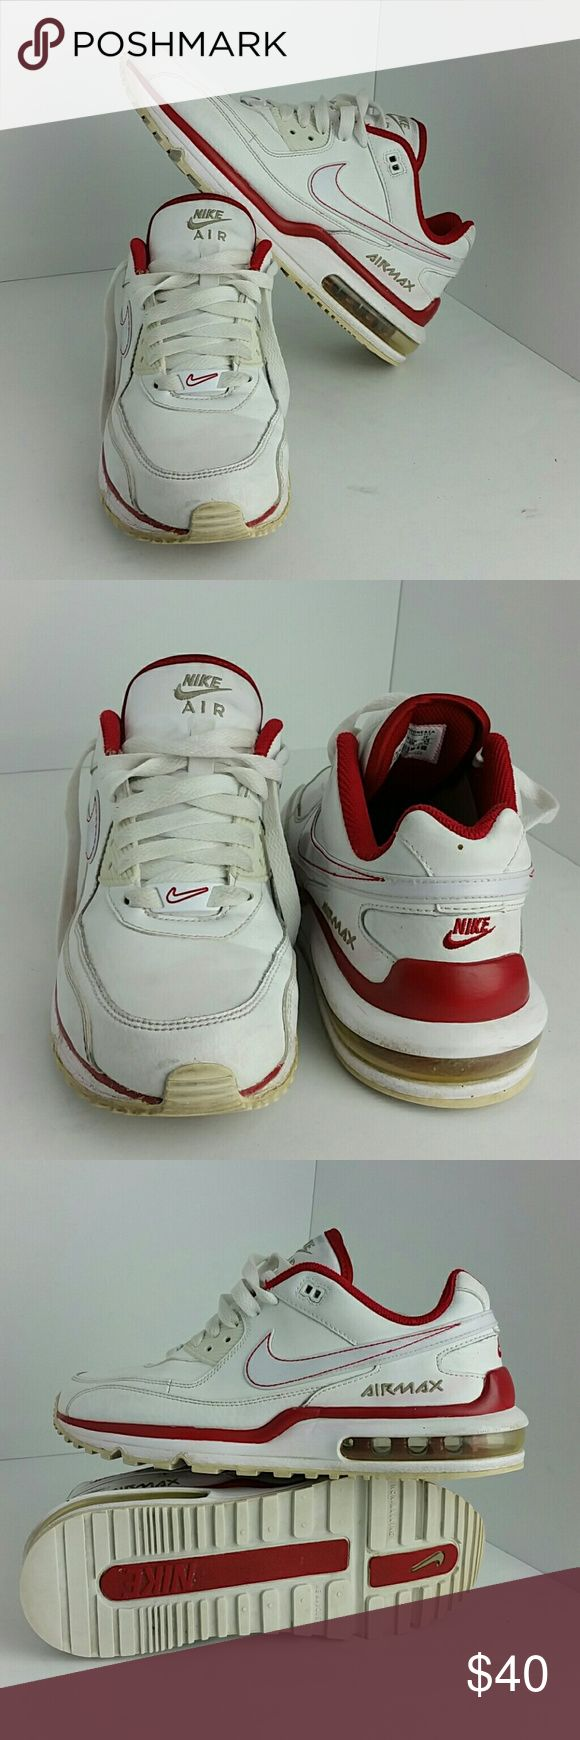 NIKE AIR MAX WRIGHT LTD WOMEN/YOUTH SHOES IN GOOD CONDITION   THIS IS A YOUTH SIZE 5.5Y WHICH IS WOMEN SIZE 7  SKE # BK NIKE Shoes Athletic Shoes